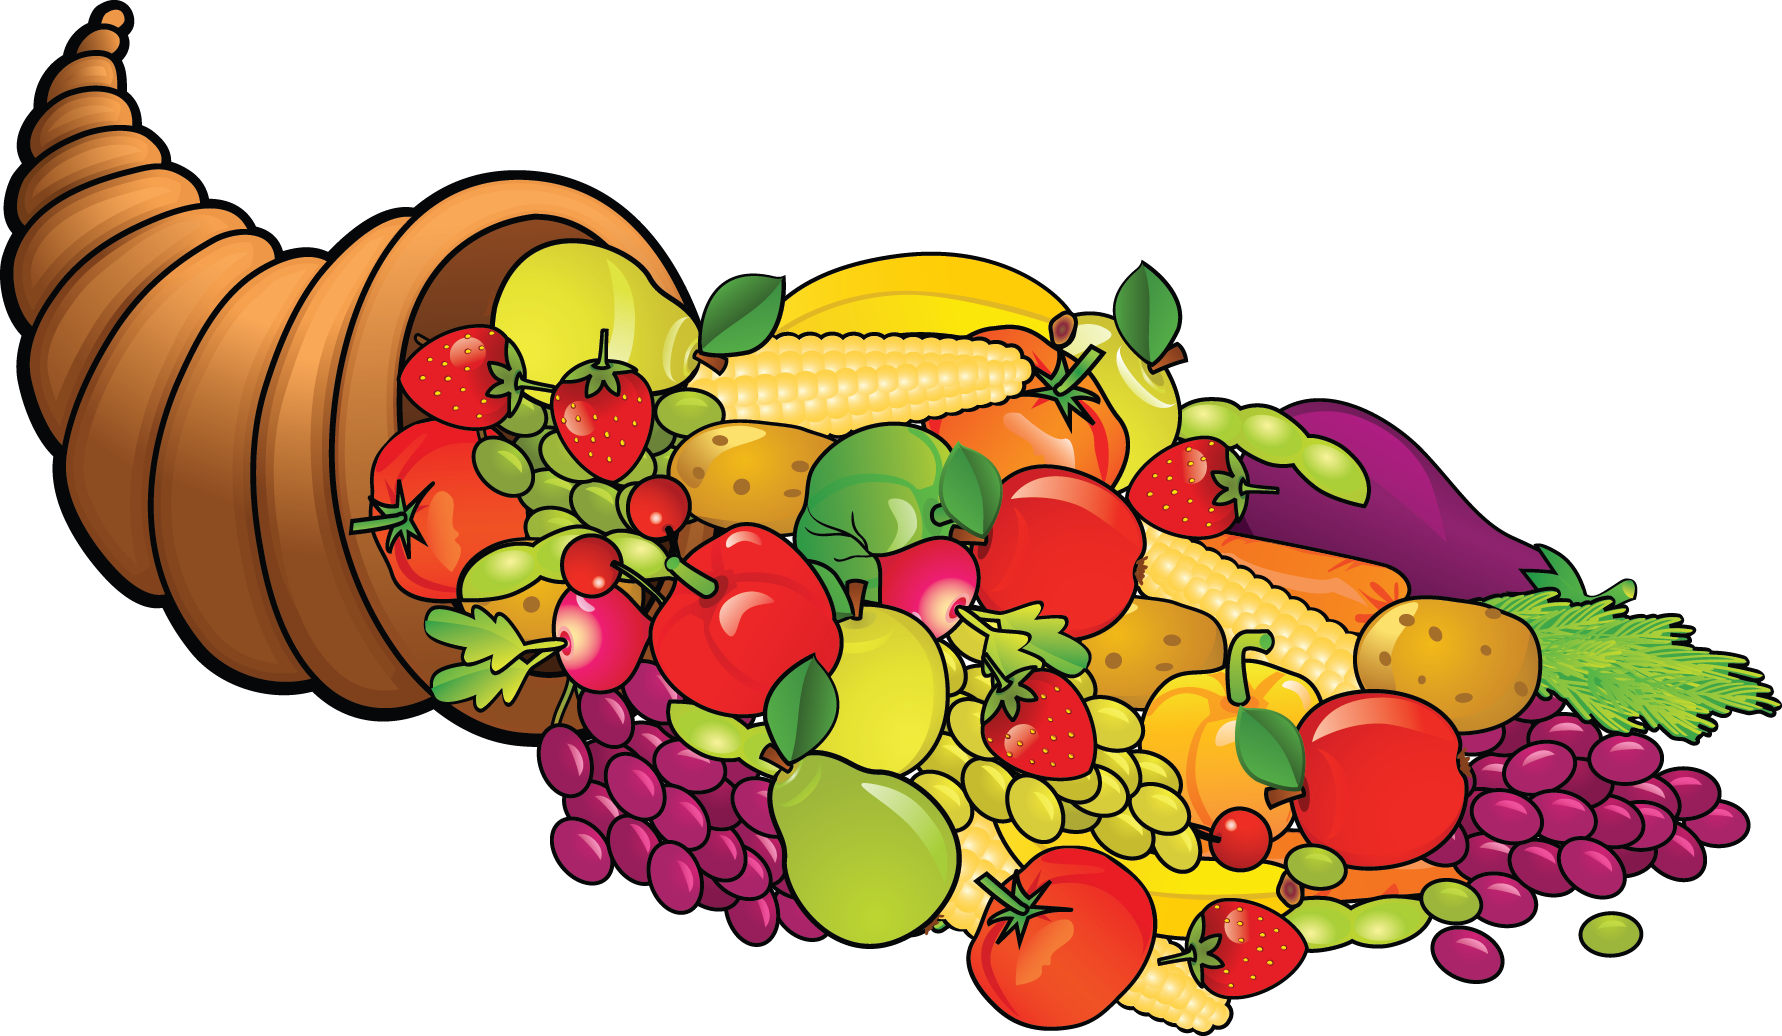 Foods clipart. Free happy cliparts download